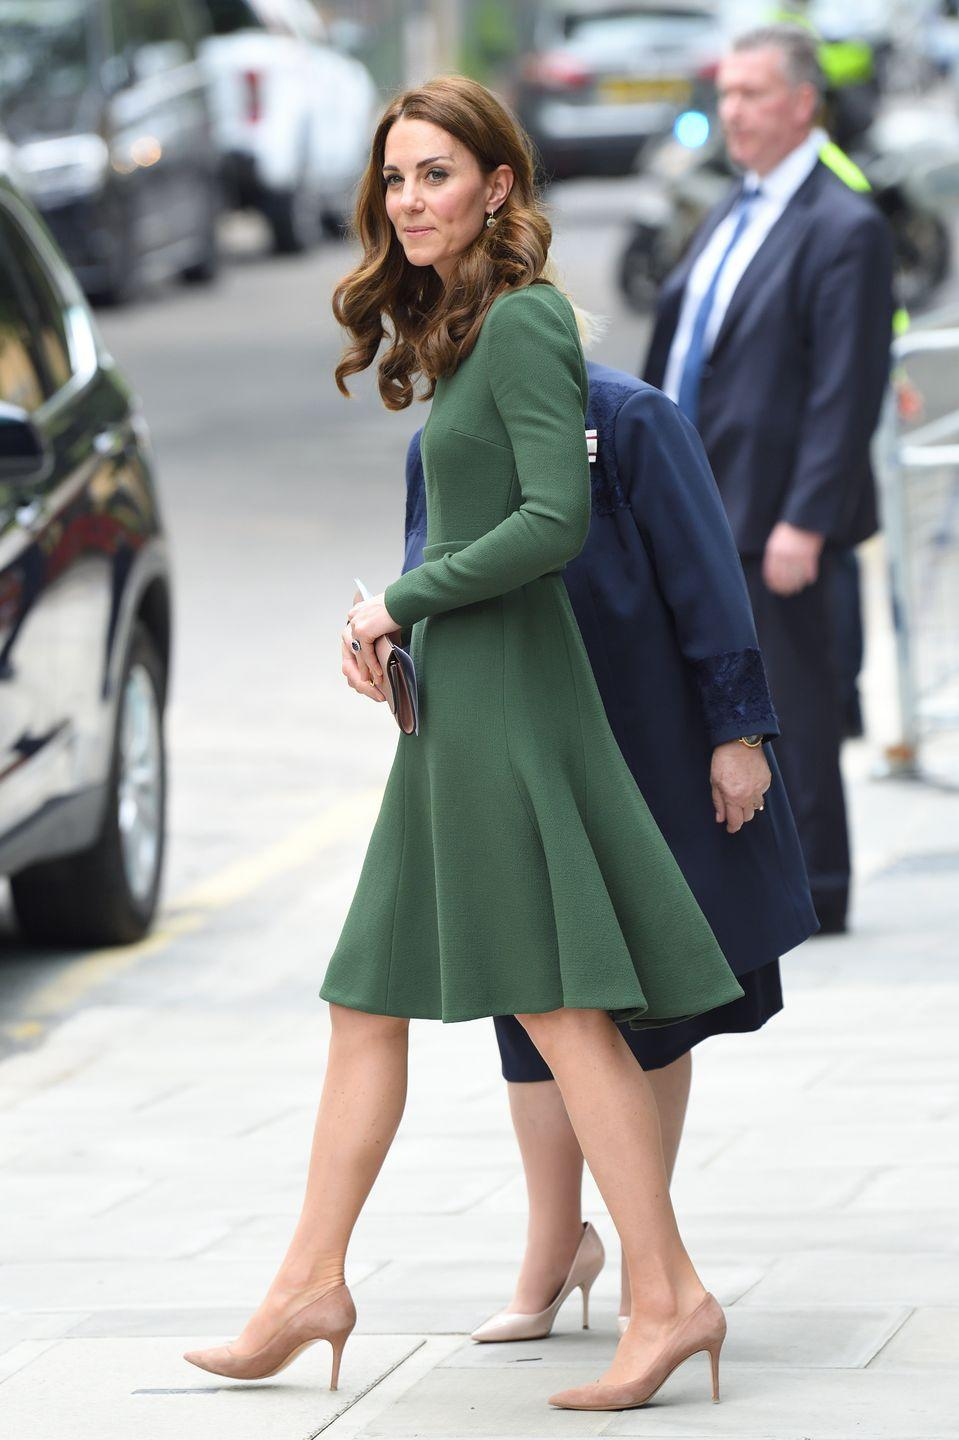 <p>Royal functions mean fancy attire, so that usually means women wear heels. Kate Middleton spends a lot of time walking around in sky-high footwear.</p>